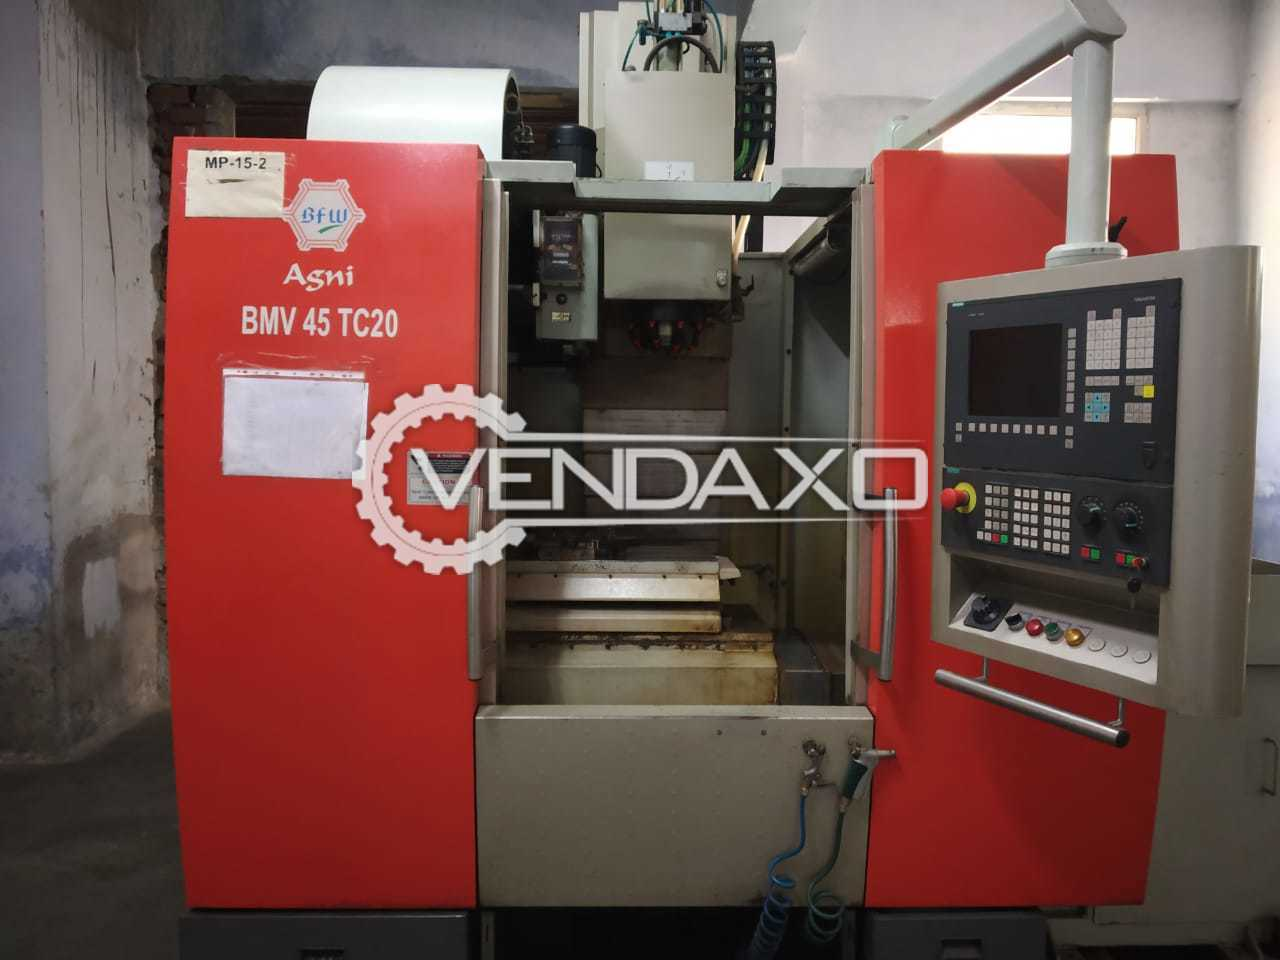 For Sale Used BFW Agni BMV45TC20 CNC Vertical Machining Center VMC - 450 x 900 mm With Accessory